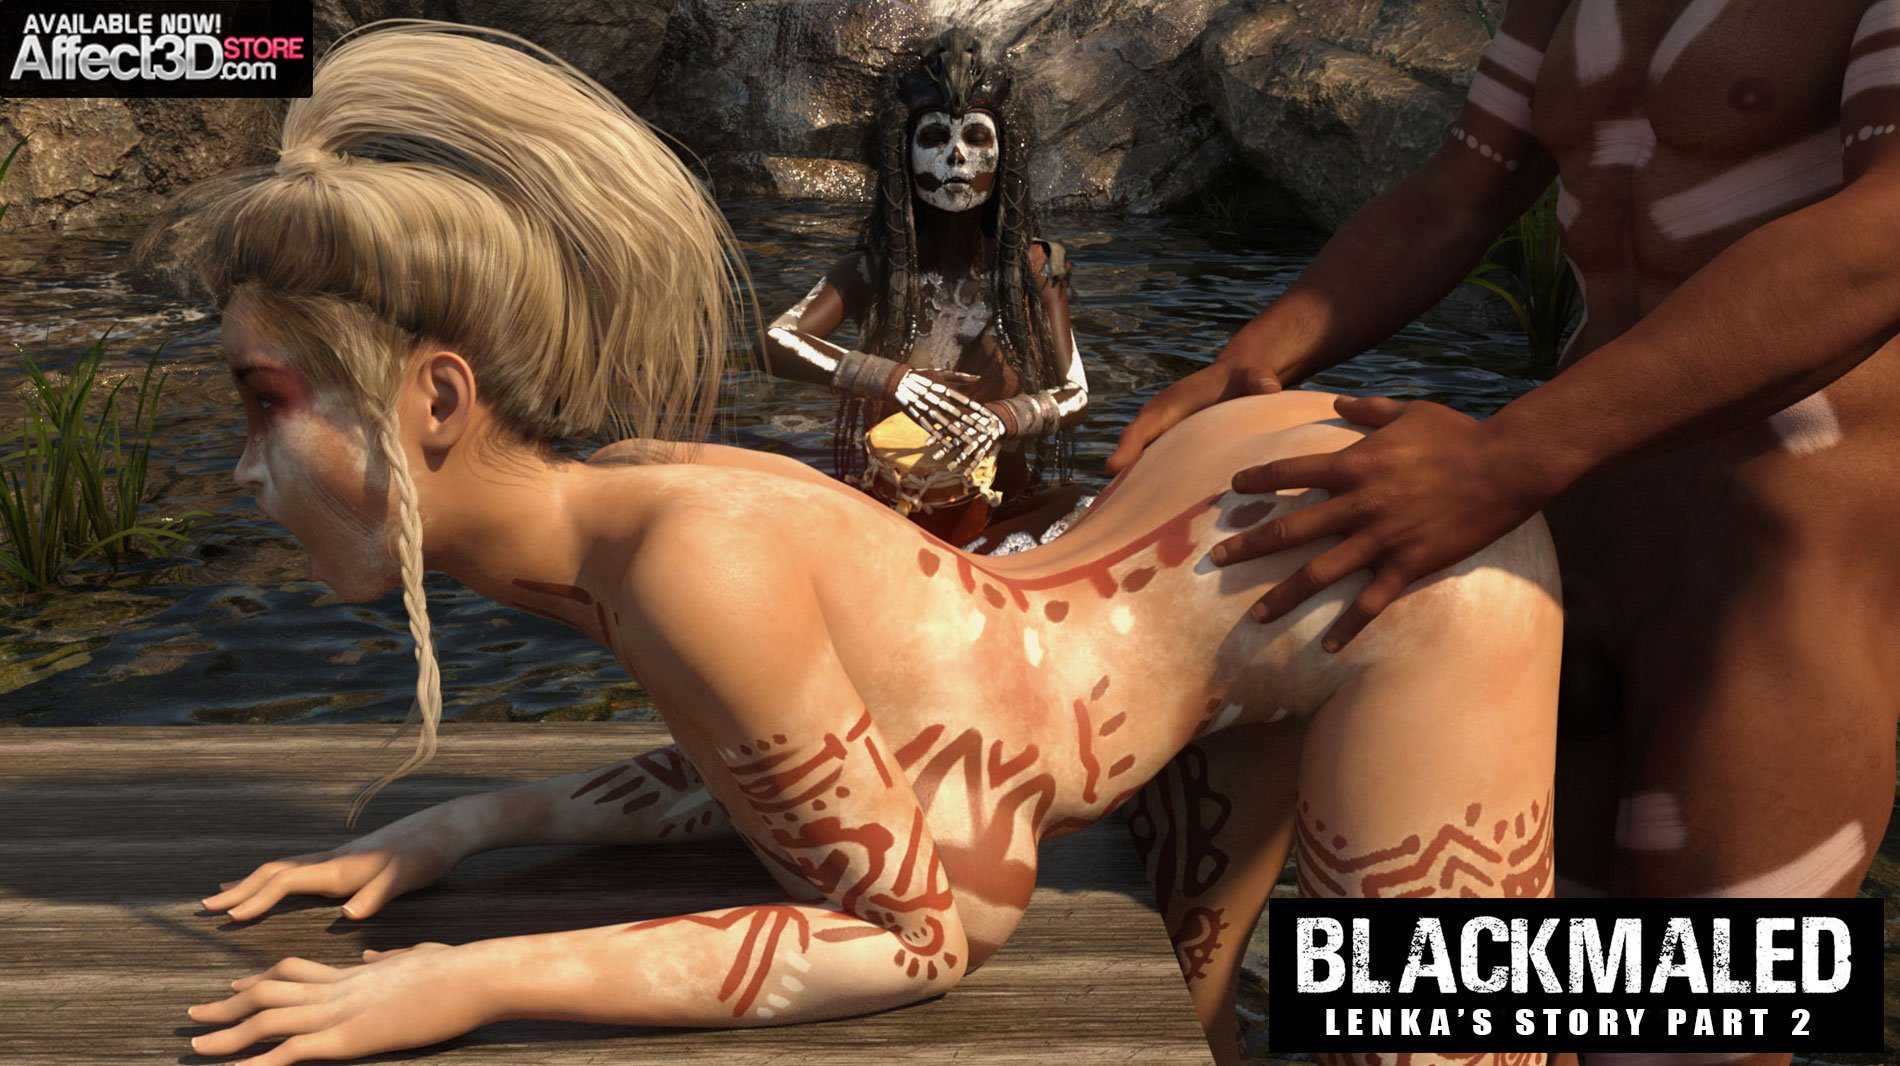 Sexy3DComics Is Back With Blackmaled: Lenka's Story Episode 1 & 2! Get Episode 1 for FREE!